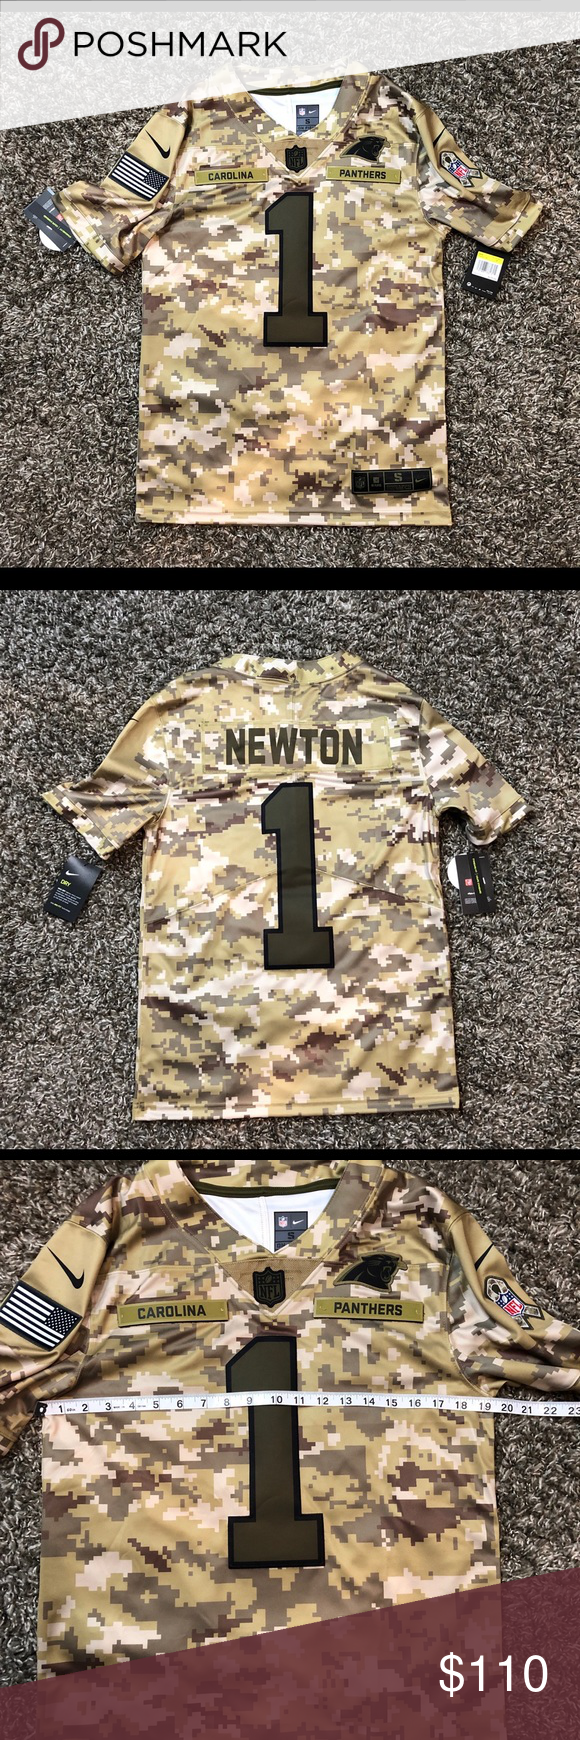 separation shoes dff70 8edf4 Nike Panthers Cam Newton Salute to Service Jersey Nike ...